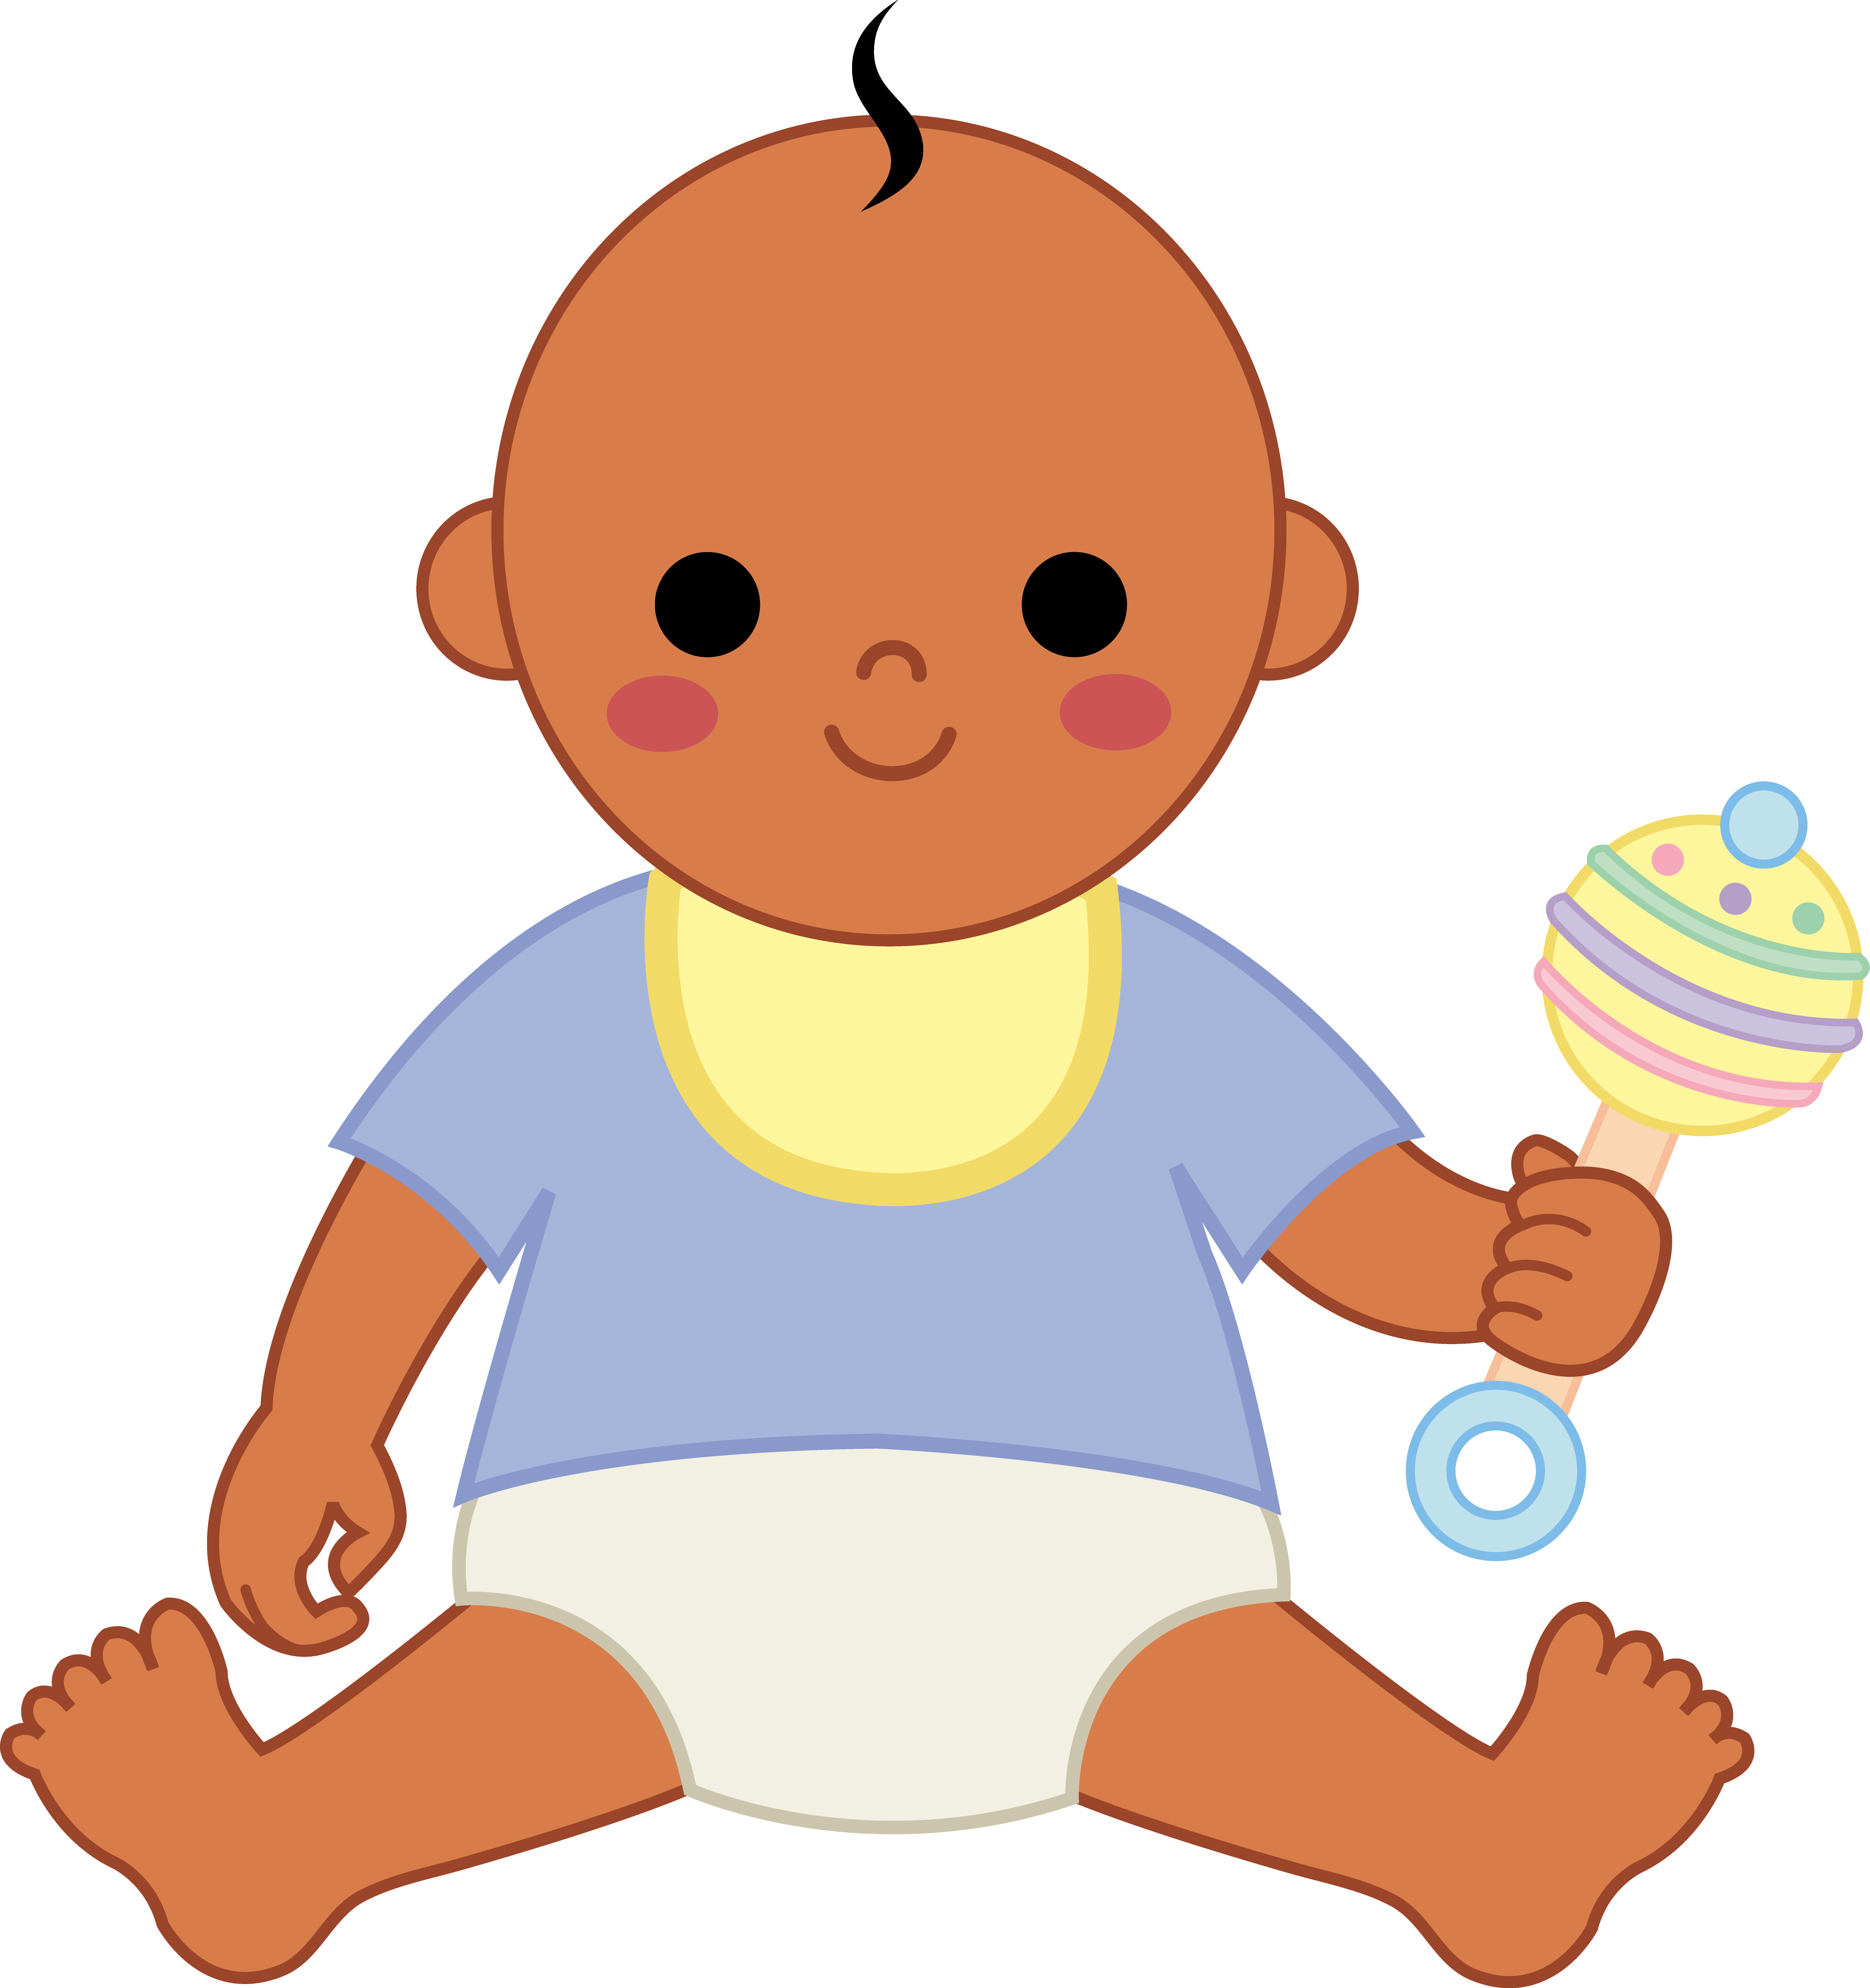 Clipart Baby-clipart baby-16